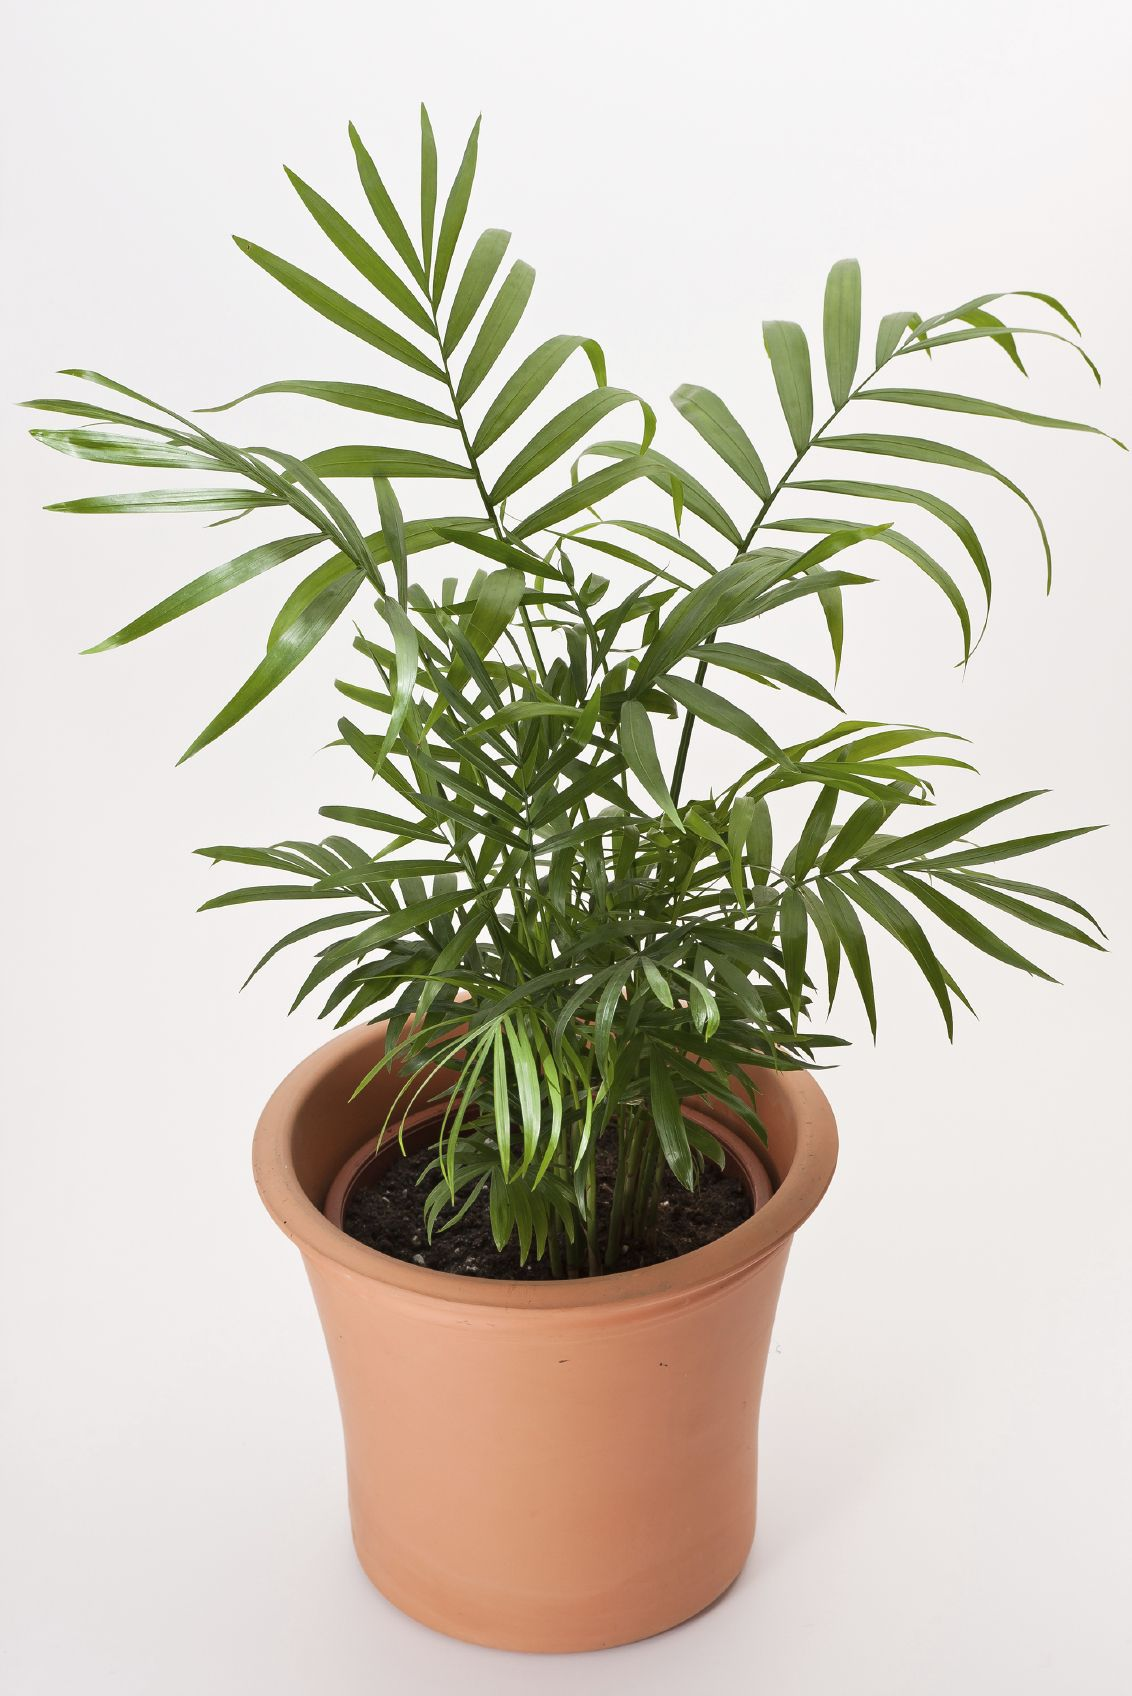 Easy Care Indoor Trees Parlor Palm Houseplant Care Caring For Indoor Parlor